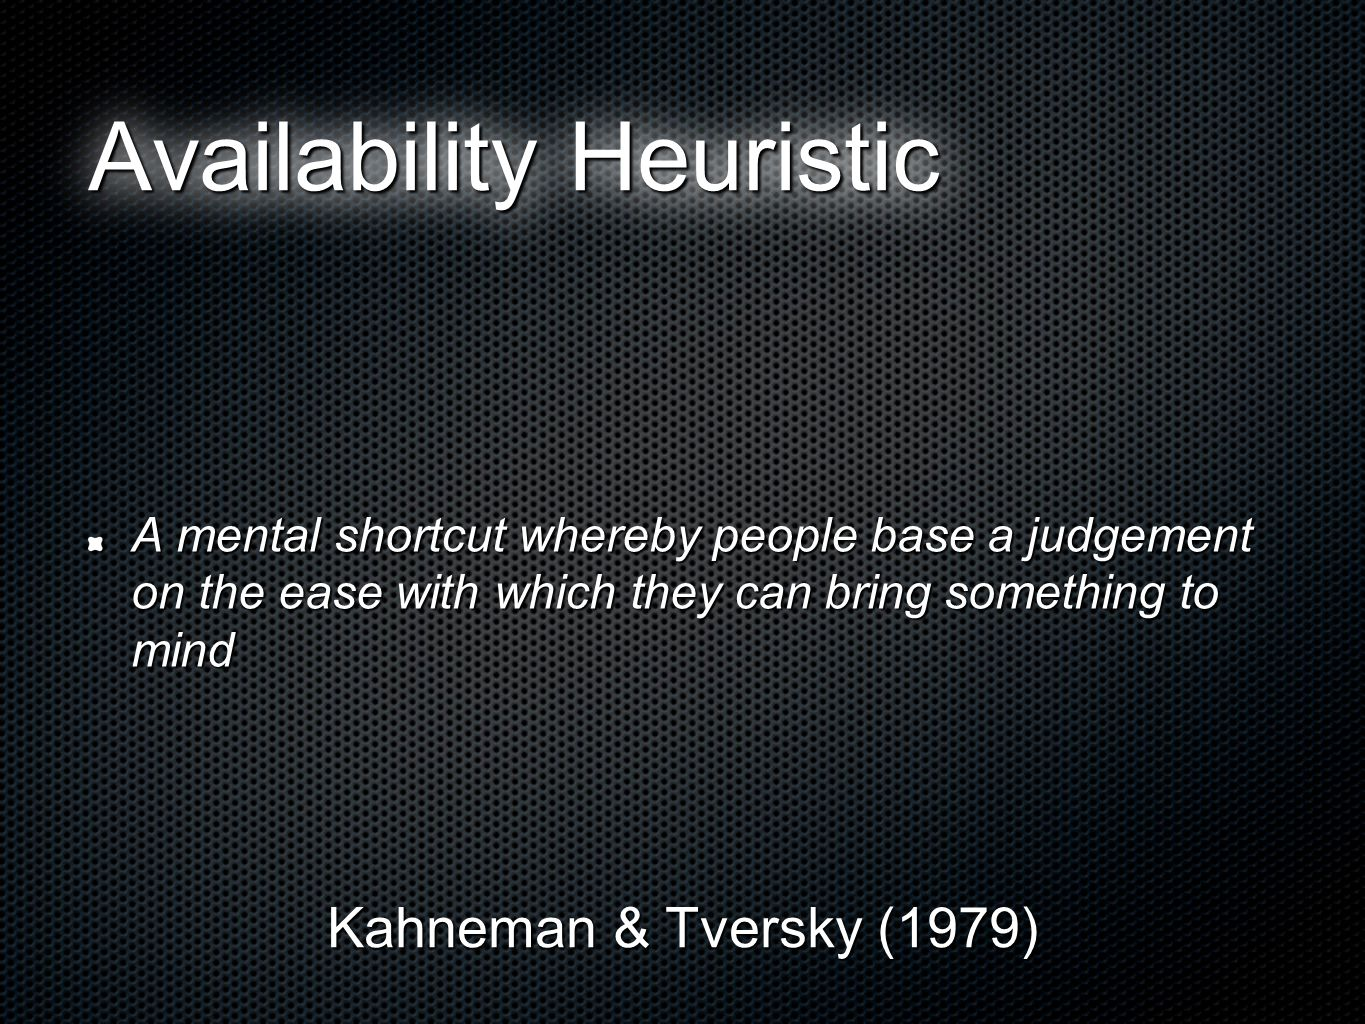 Availability Heuristic A mental shortcut whereby people base a judgement on the ease with which they can bring something to mind Kahneman & Tversky (1979)